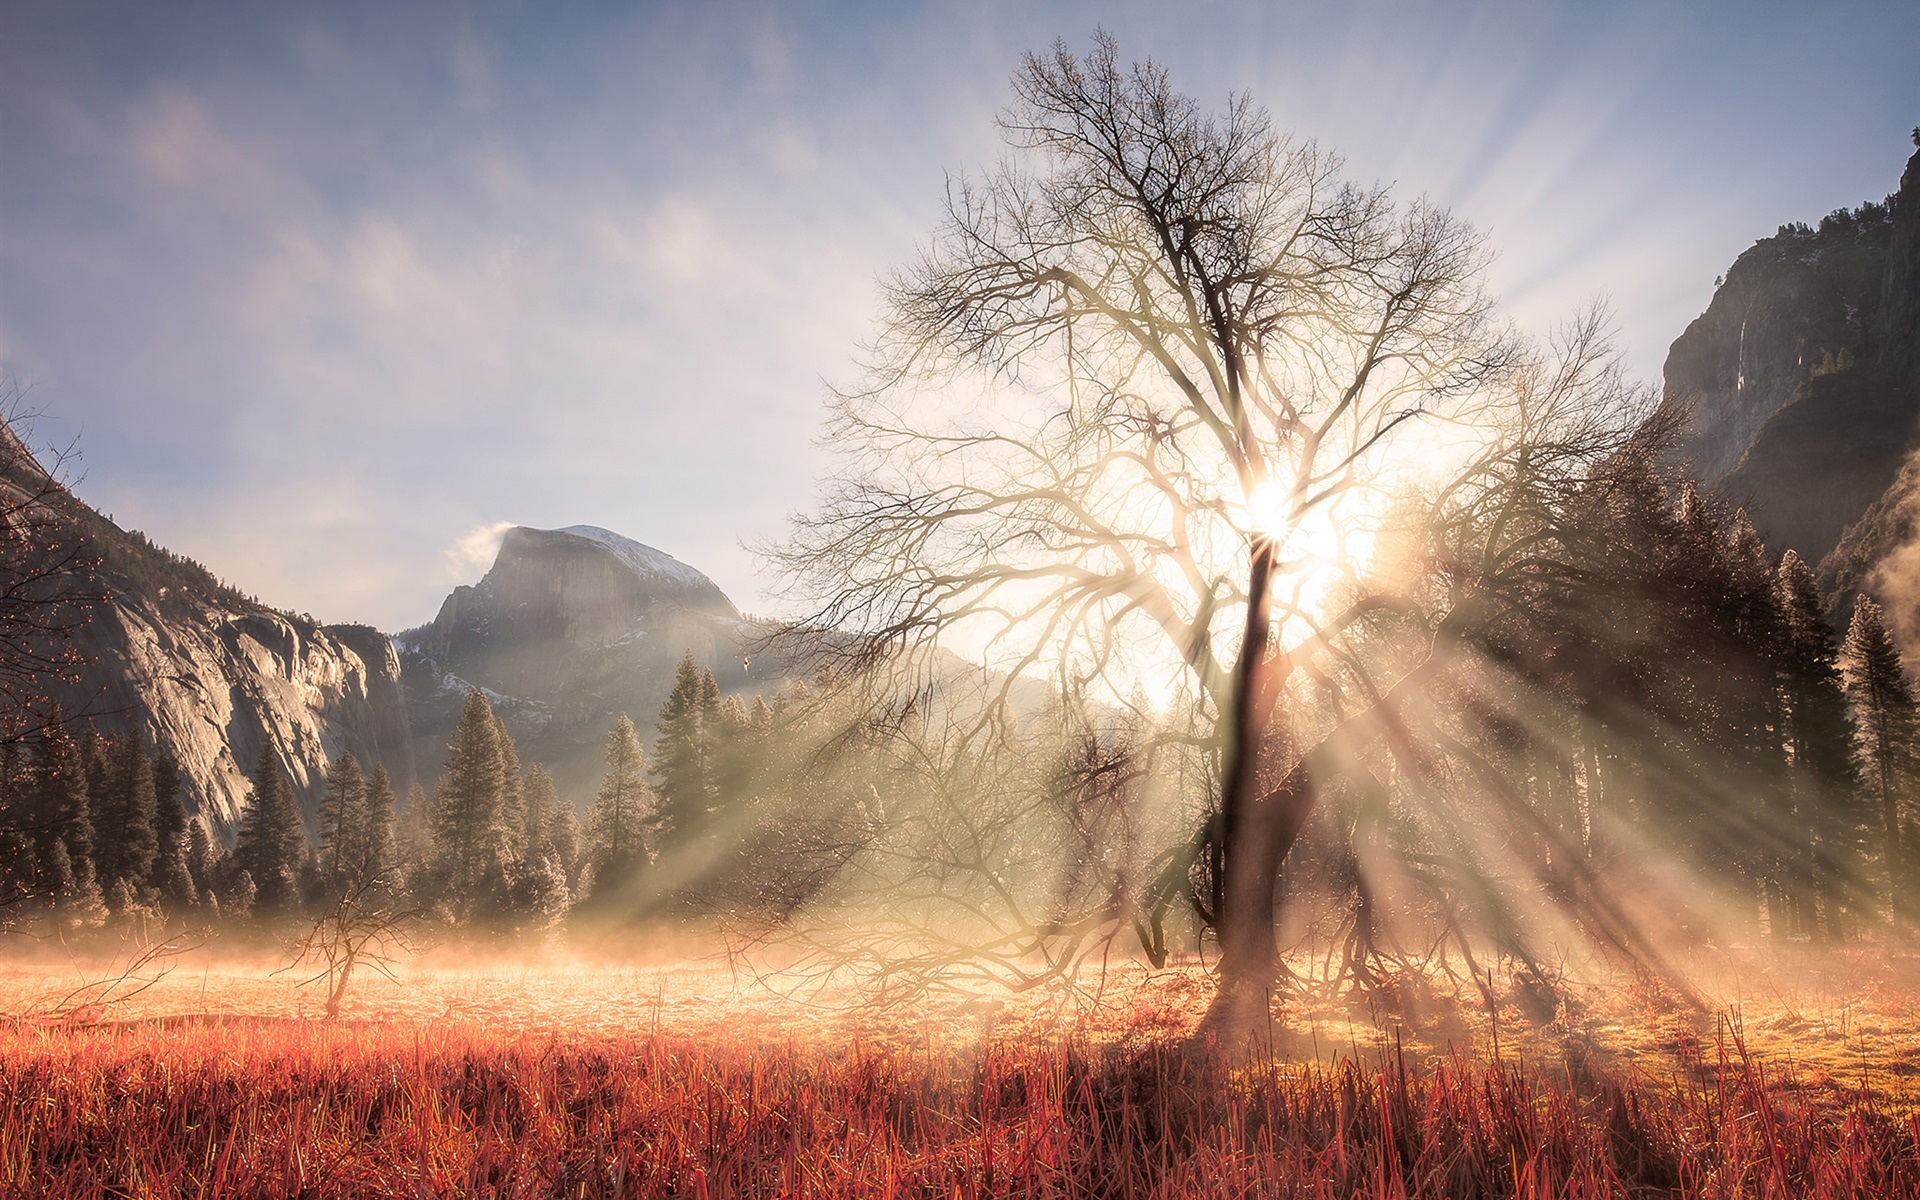 Cute November Calendar Wallpaper Usa California Yosemite National Park Winter Tree Sun